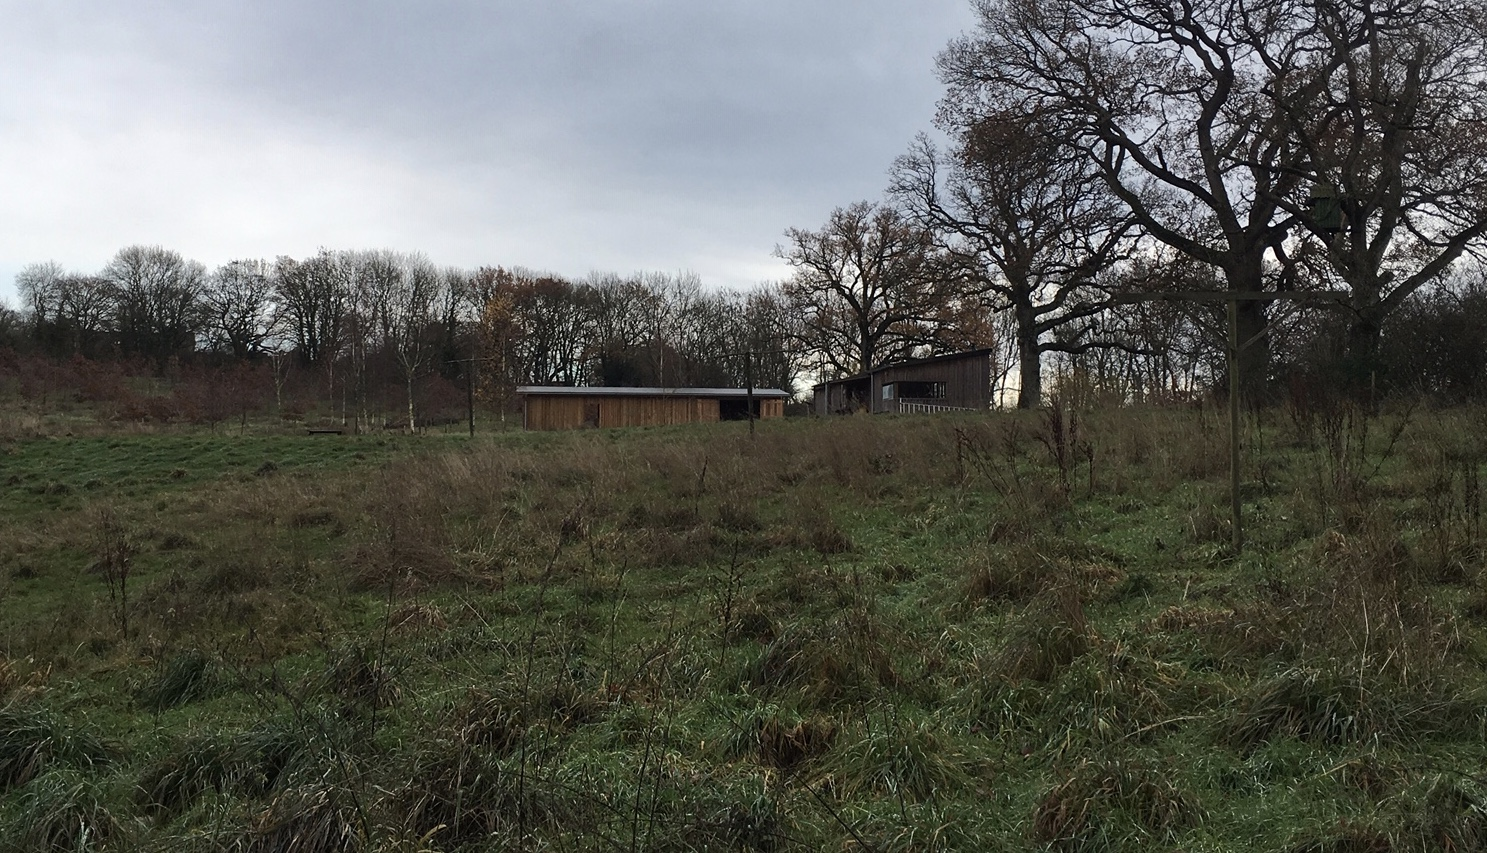 The new Barn Owl barn (to the left of the existing barn) situated near the Barn Owl field.